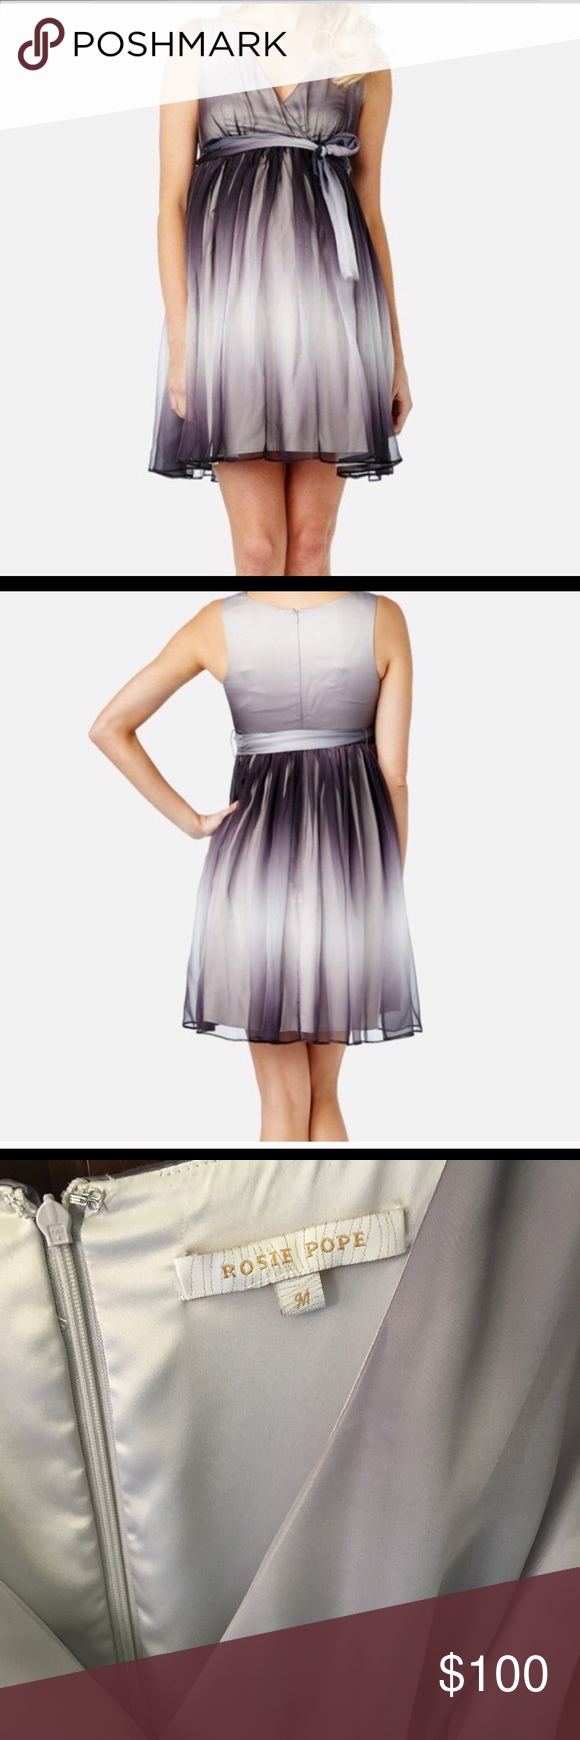 98d5883f1ad5e Rosie Pope Anabelle Maternity Dress Beautiful Rosie Pope Maternity Dress  Ombré Worn once Perfect for a wedding